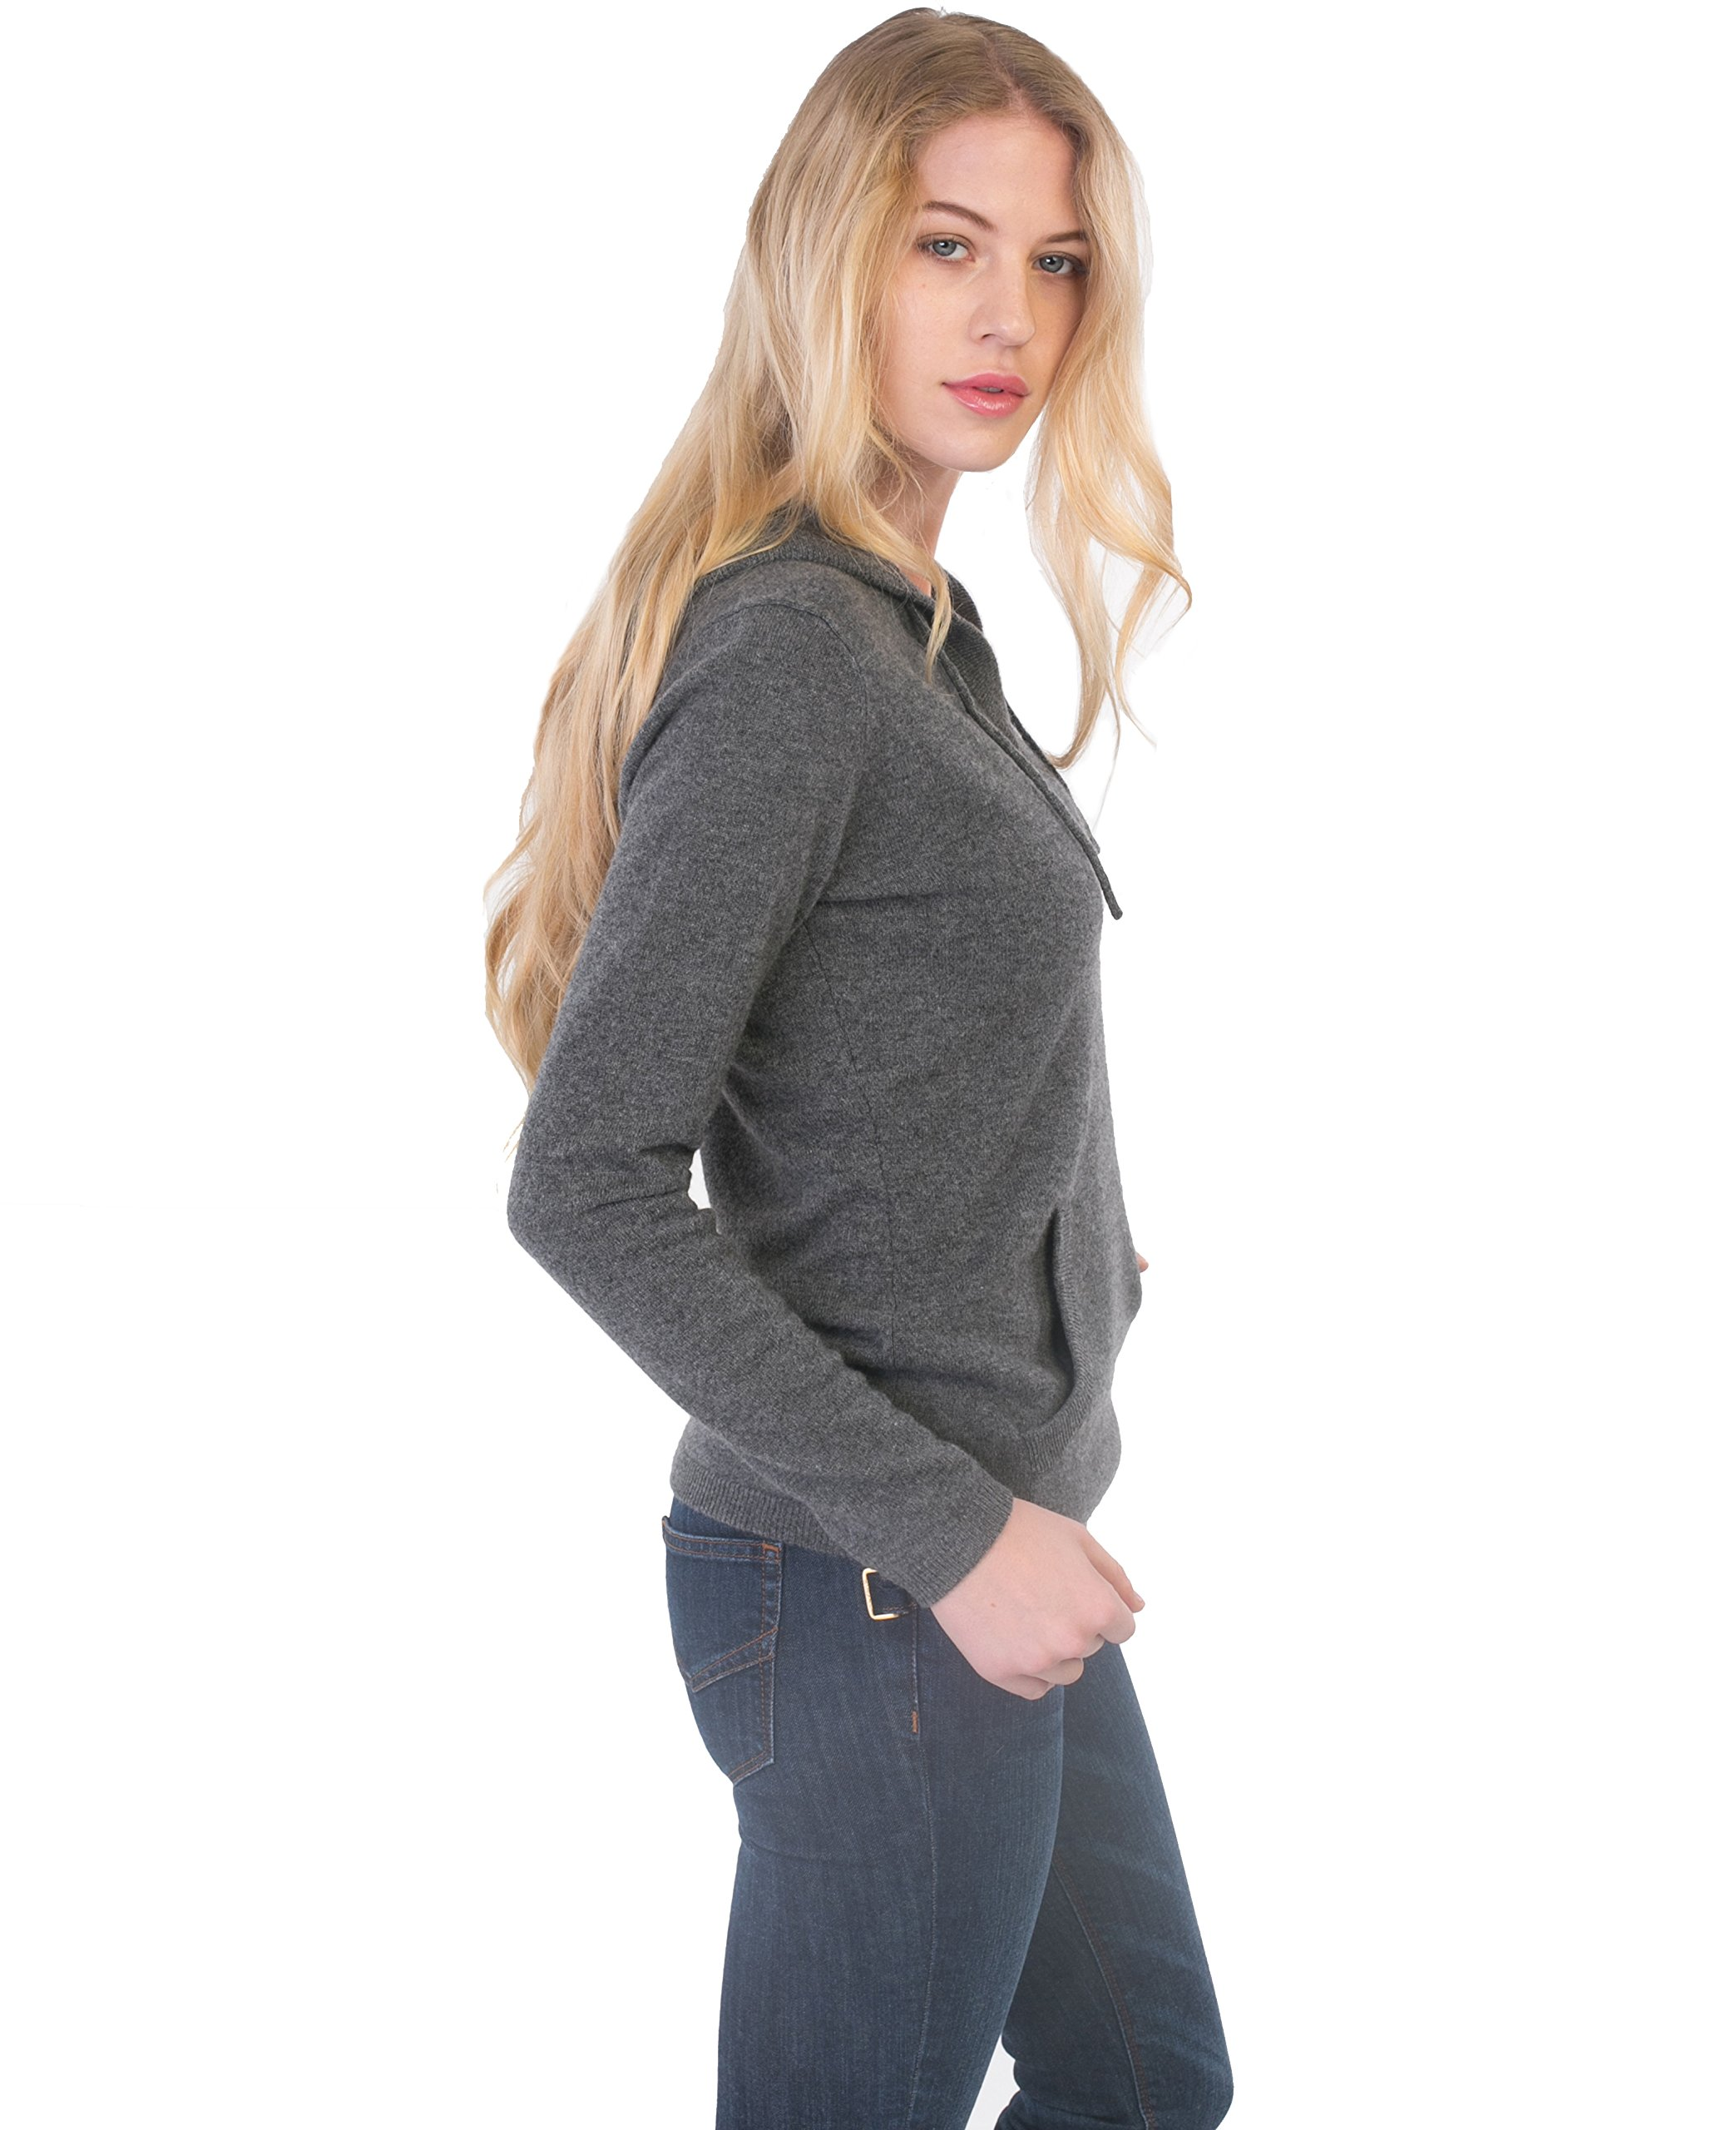 cashmere 4 U Women's 100% Cashmere V Neck Hoodie Sweater Pullover (X-Large, Gris Moyen) by cashmere 4 U (Image #3)